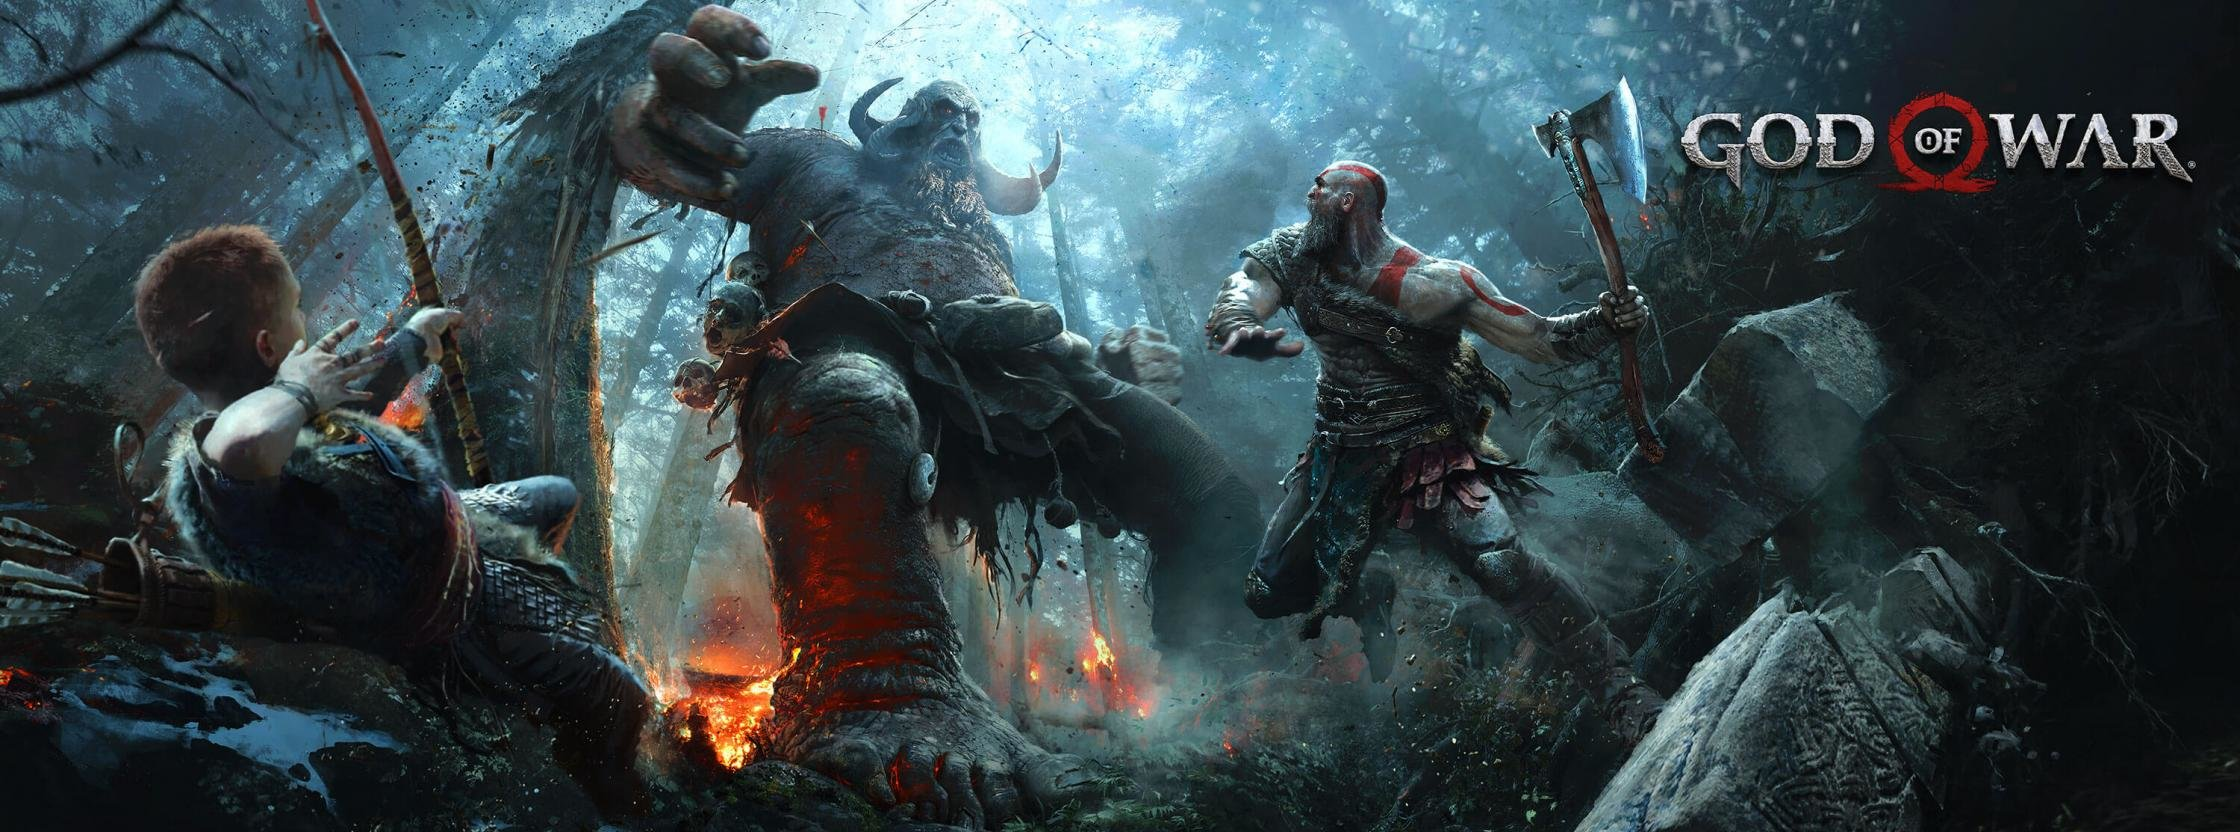 Free download God Of War 4 background ID:70190 dual monitor 2240x832 for desktop